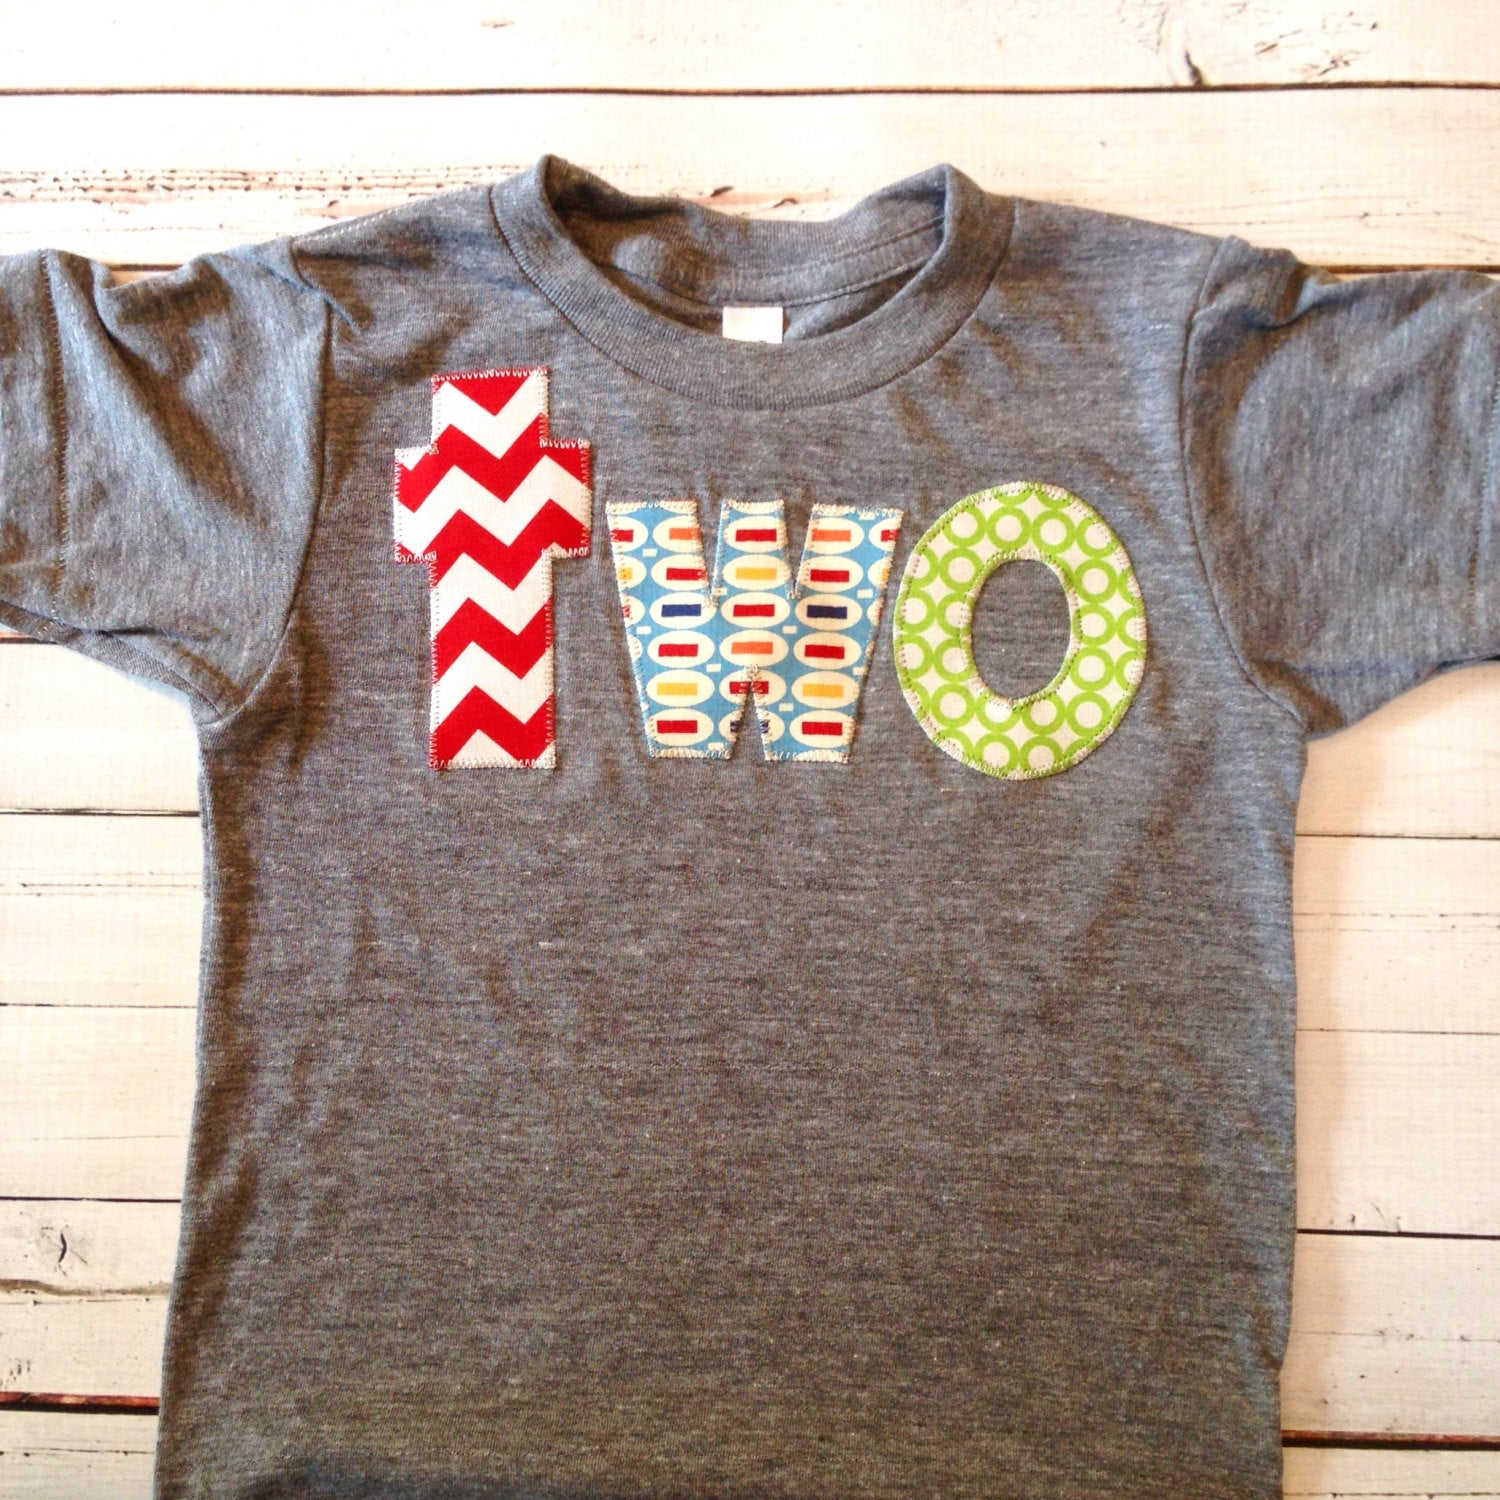 Birthday Shirt for 2 year old boy, 2nd Birthday shirt, two shirt, red chevron, pez, green, primary color, red blue yellow, birthday boy